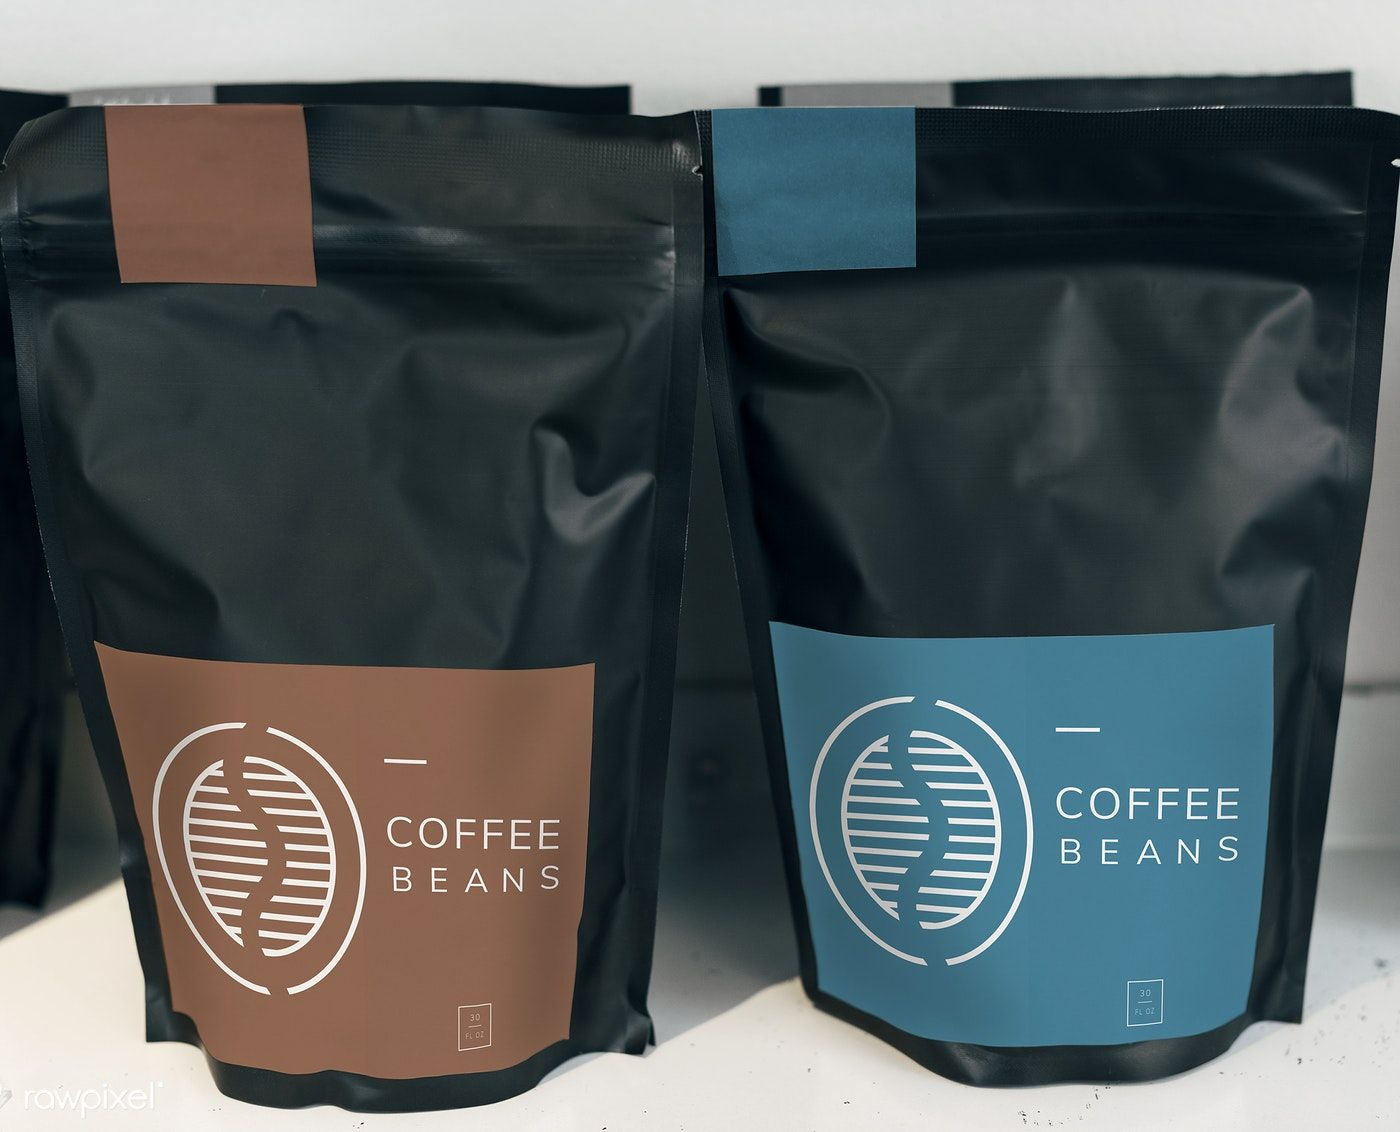 Download Coffee Bean Bag Mockup Design Free Image By Rawpixel Com Coffee Bean Bags Bag Mockup Coffee Beans